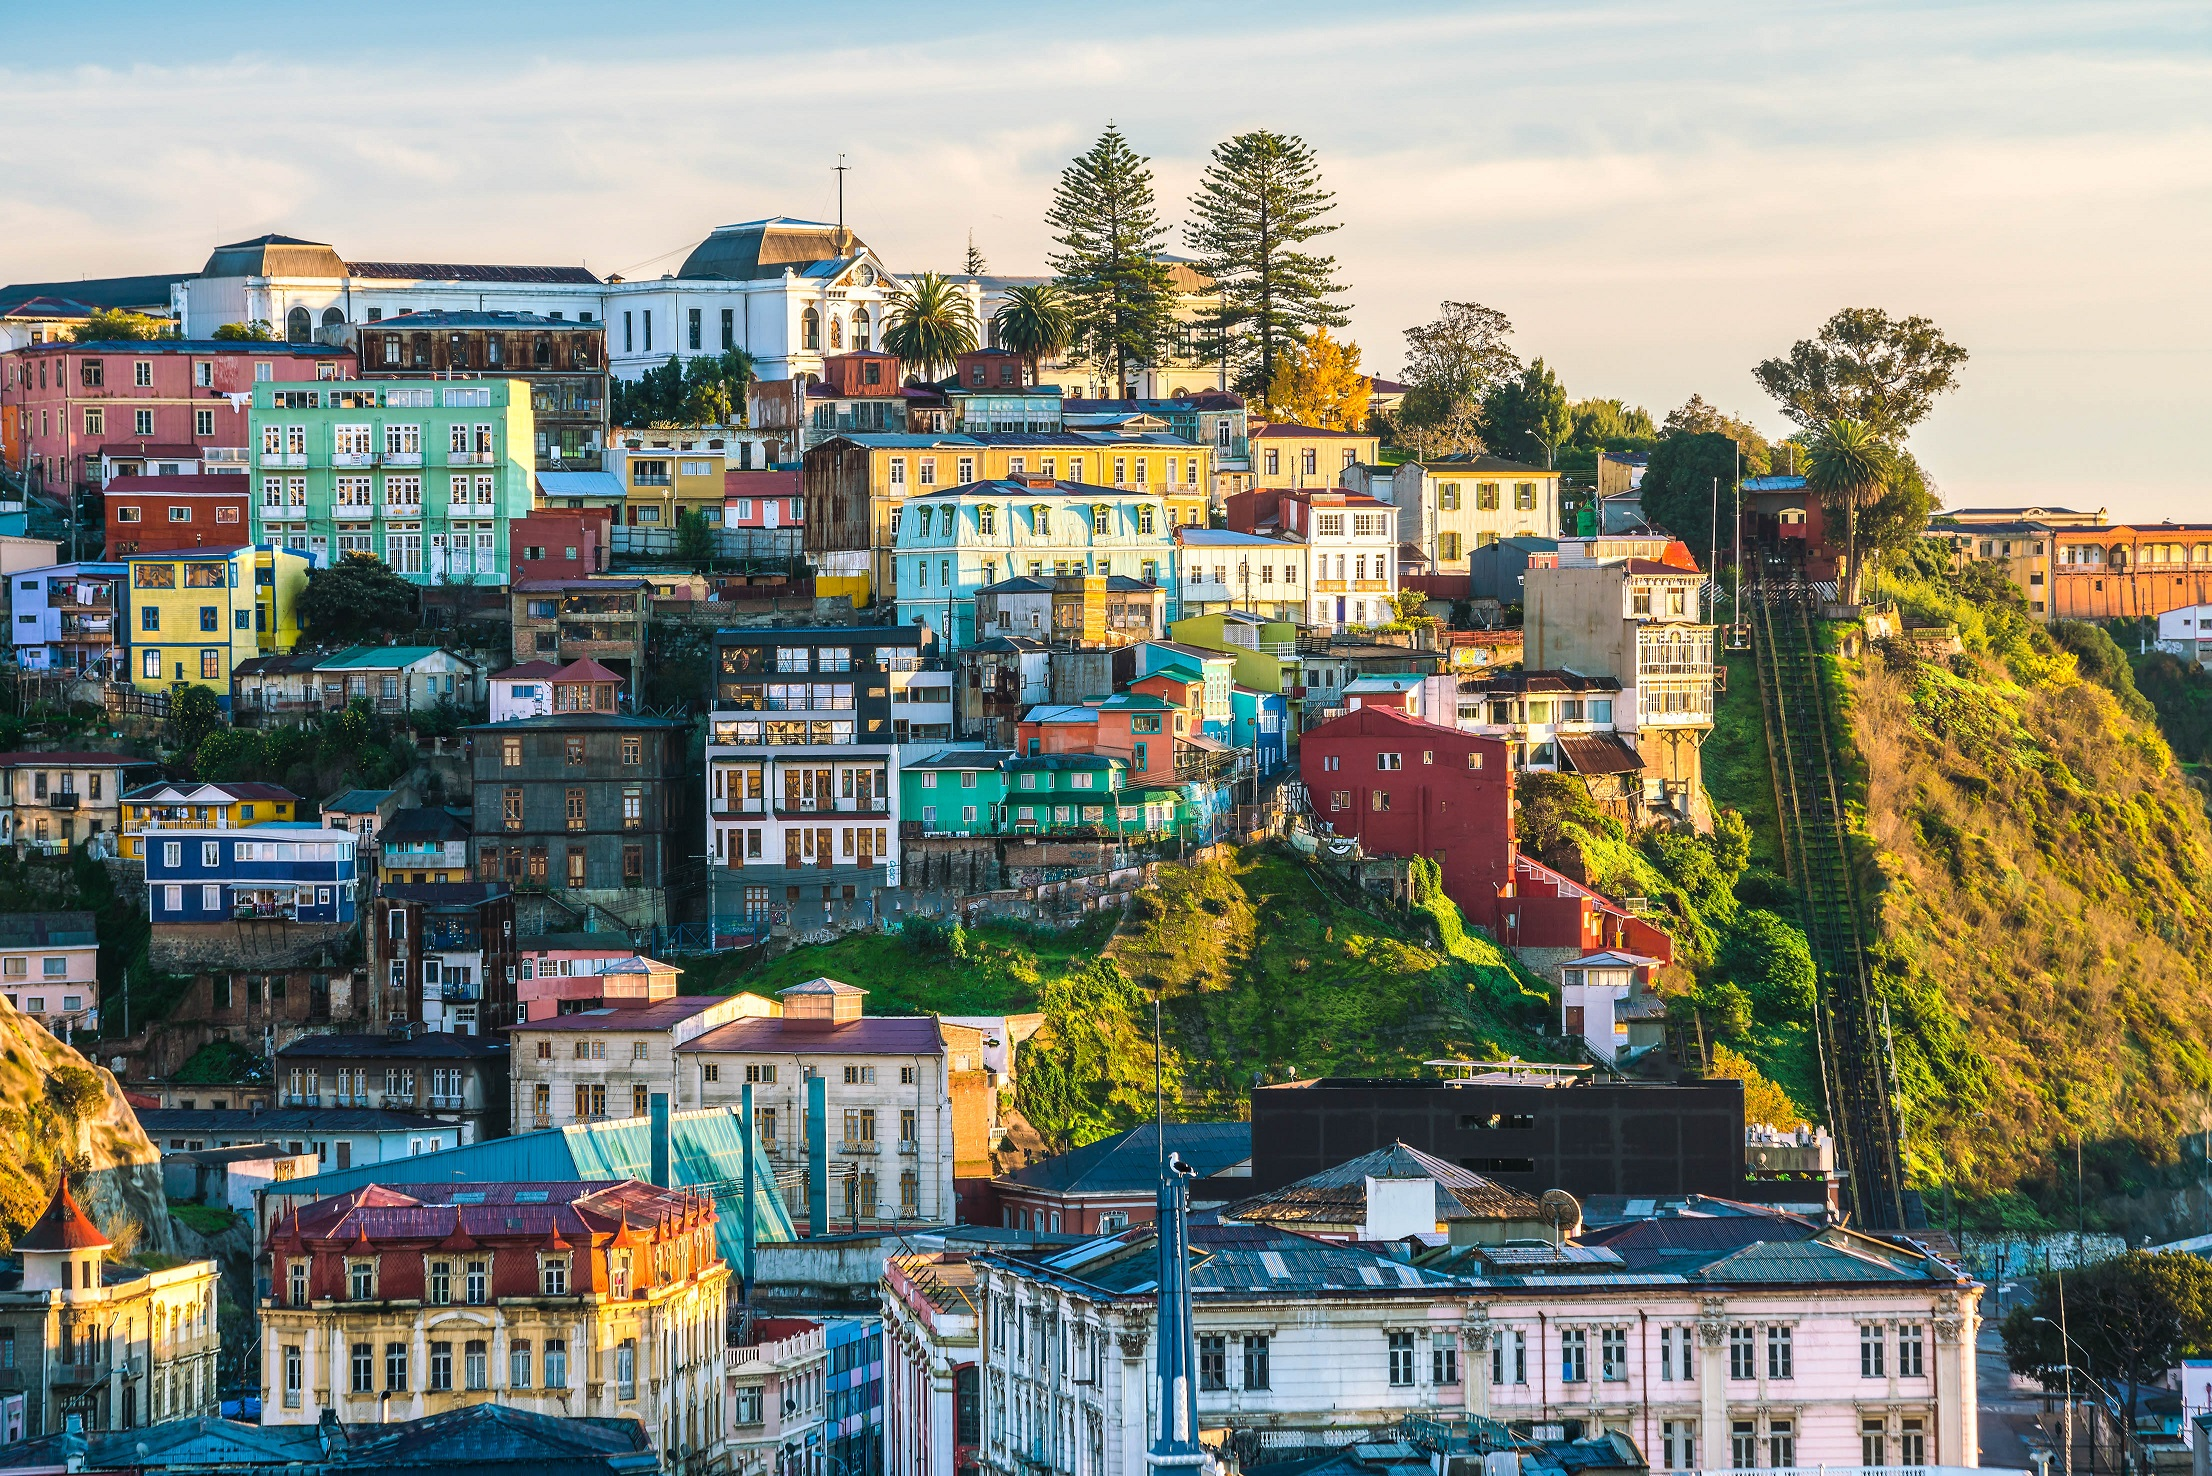 Colorful buildings of the UNESCO World Heritage city of Valparaiso